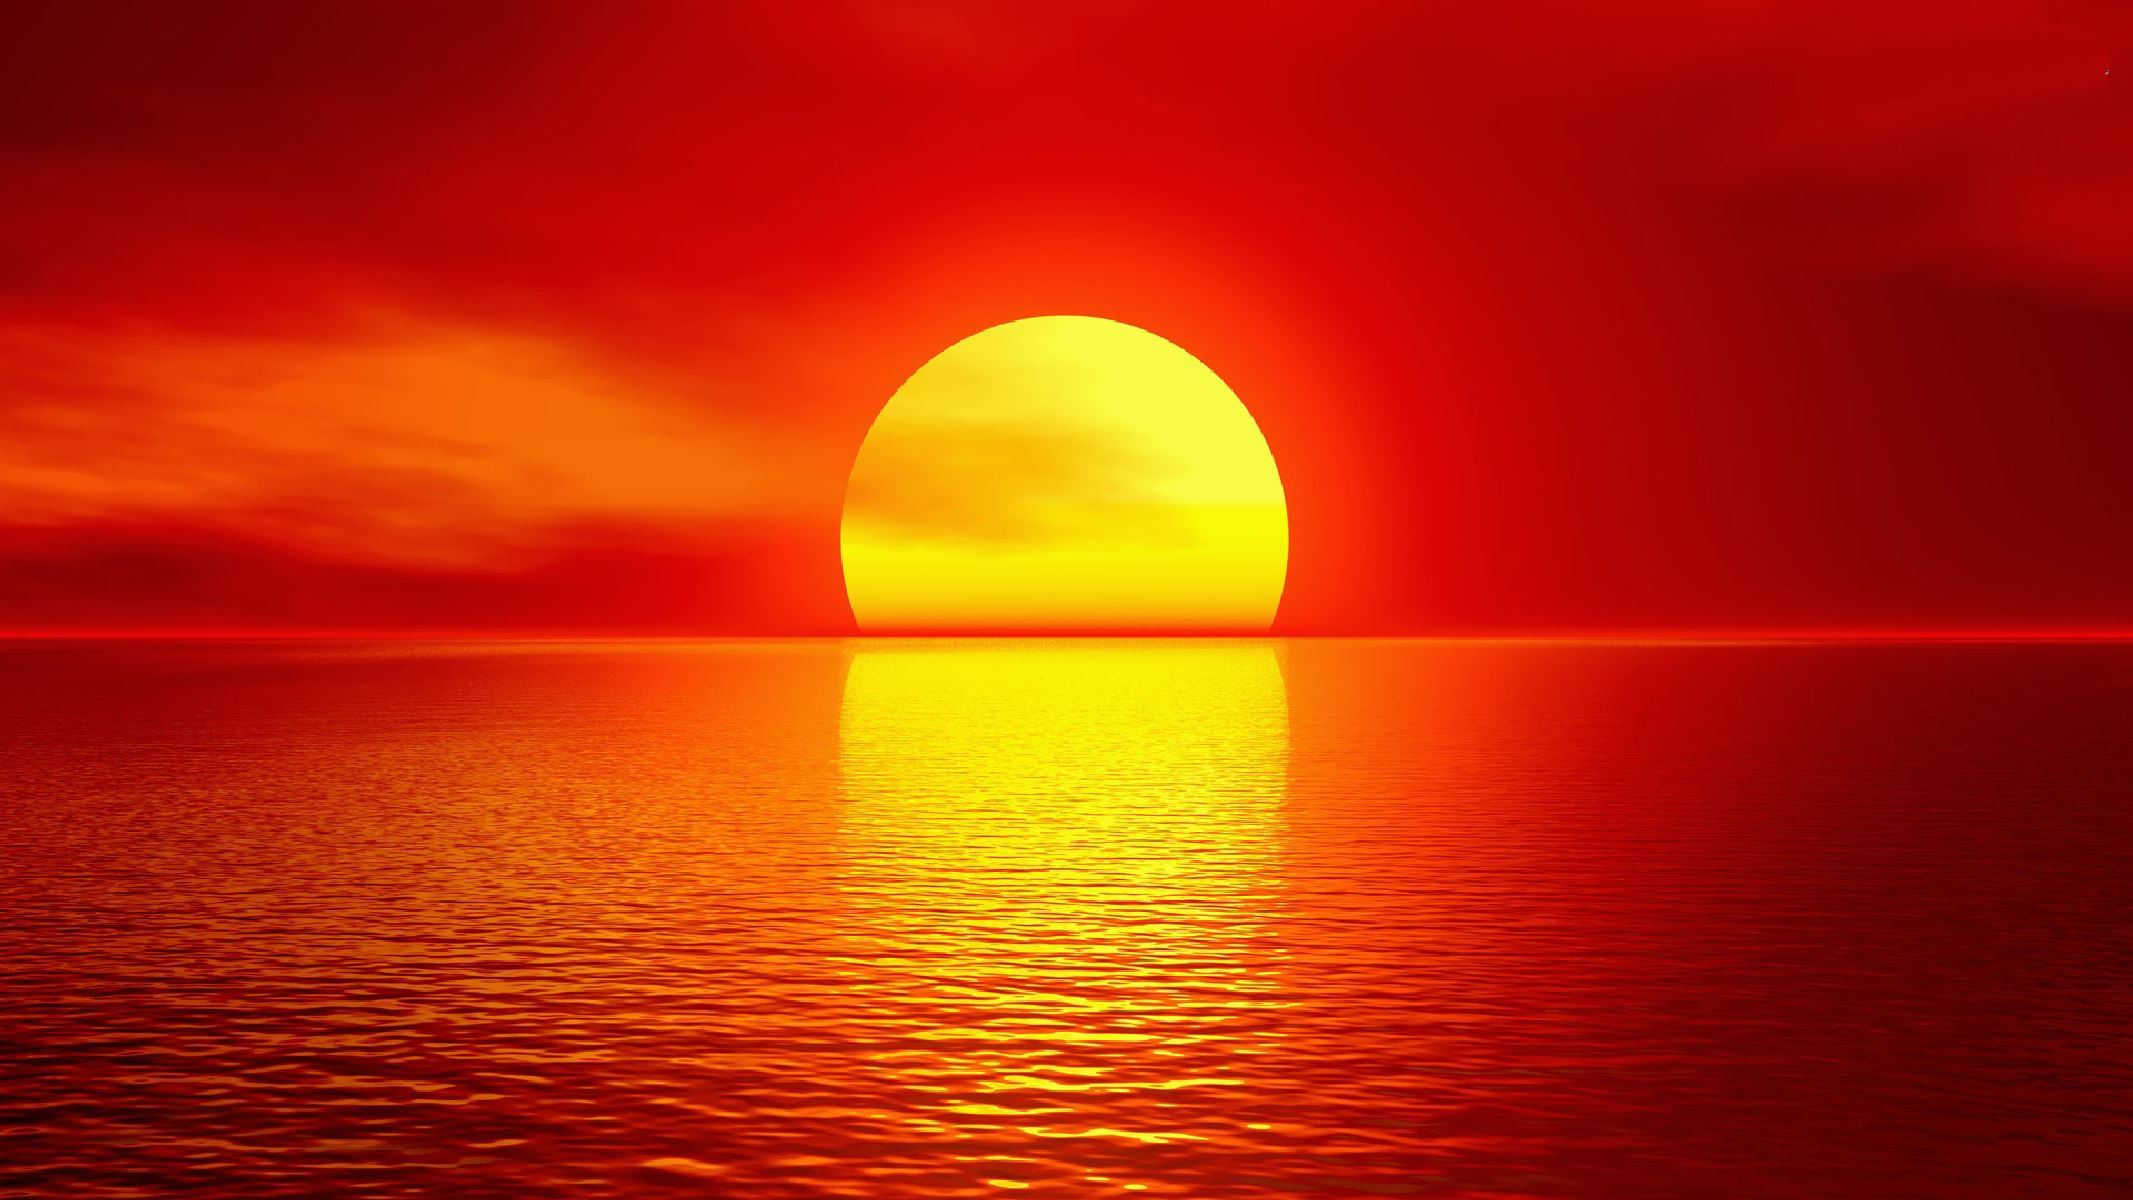 Sunset Backgrounds on Wallpapers Vista